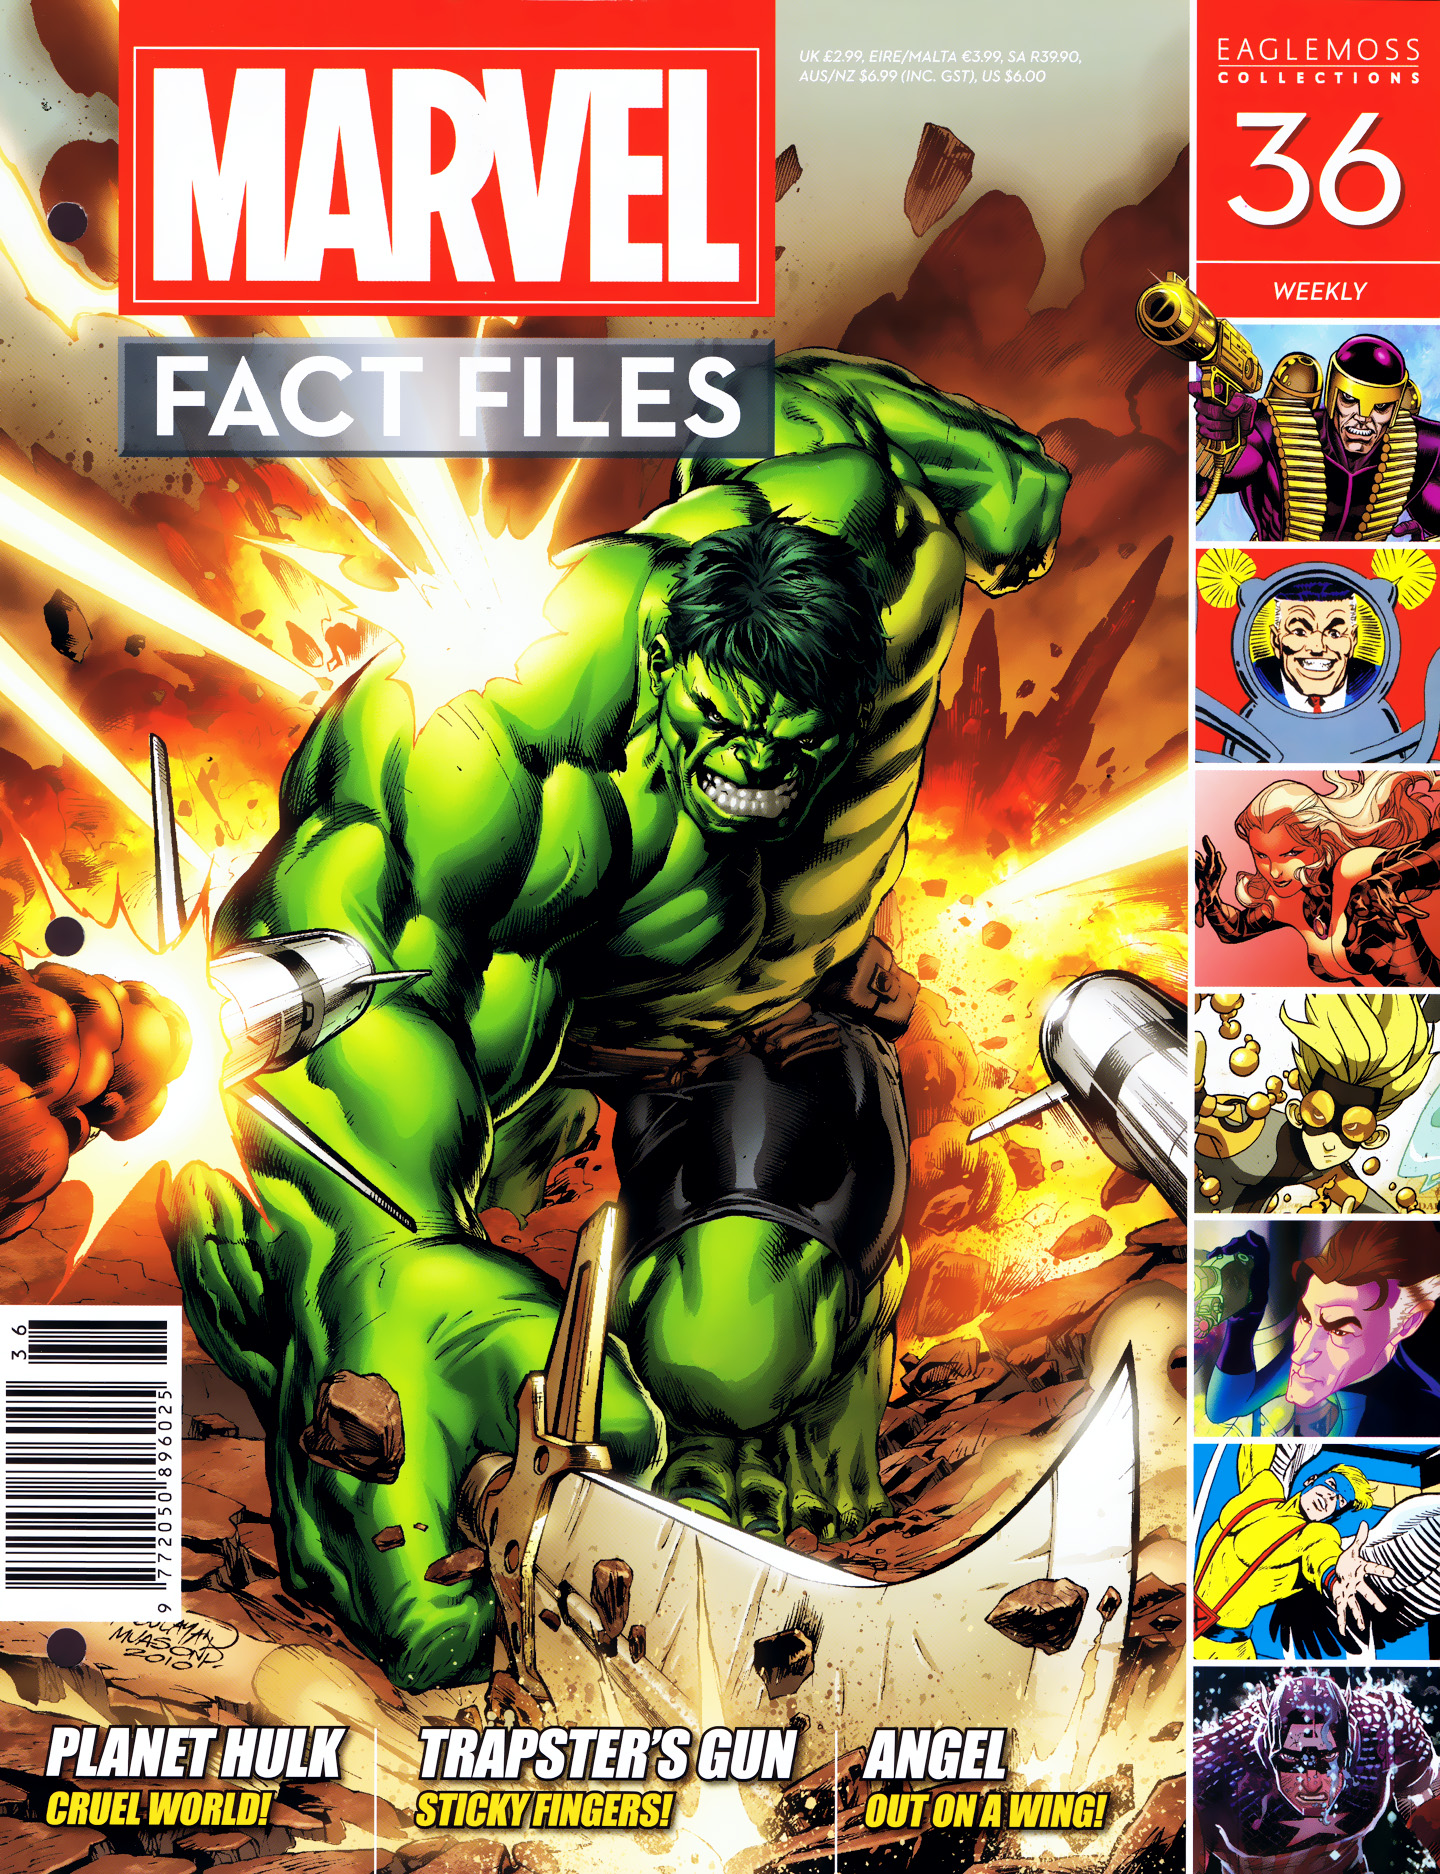 Marvel Fact Files 36 Page 1